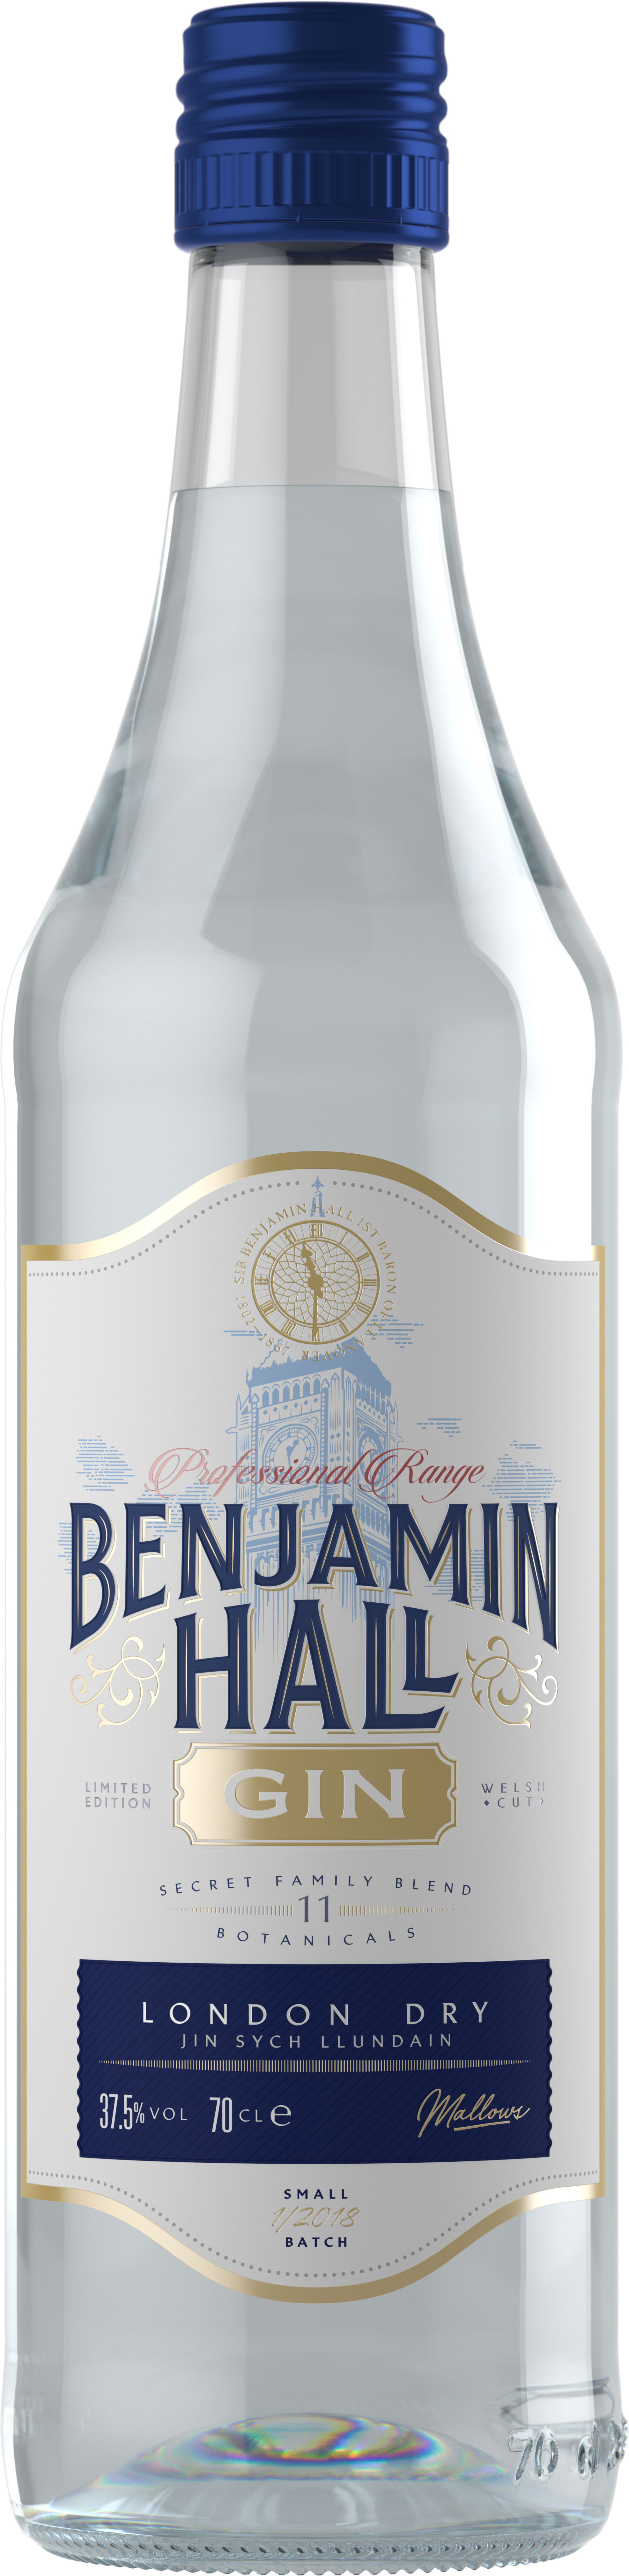 Benjamin Hall - London Dry Gin 70cl Bottle